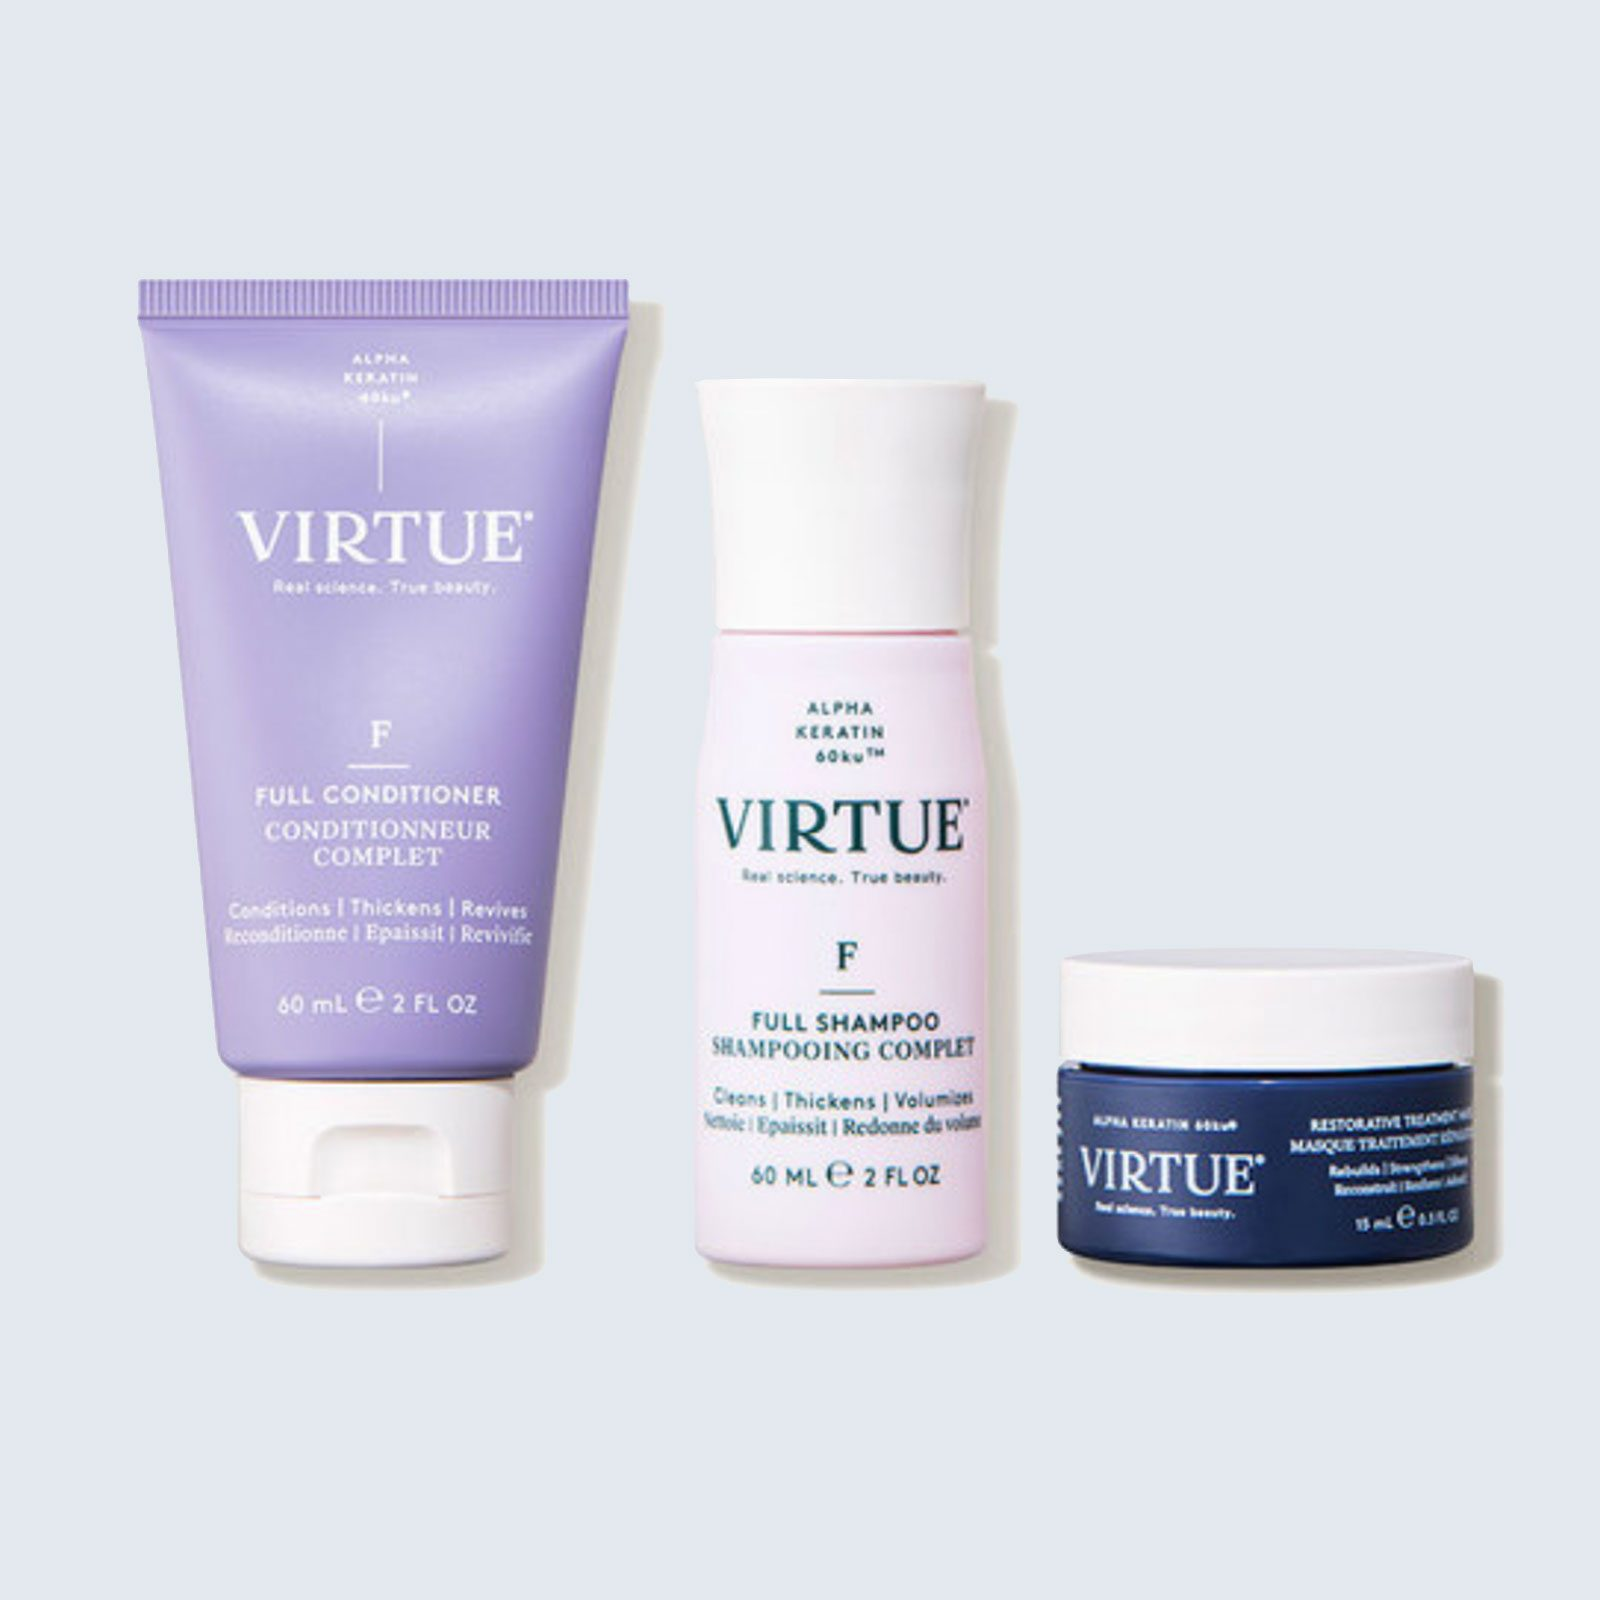 VIRTUE® Volumize & Thicken Discovery Kit